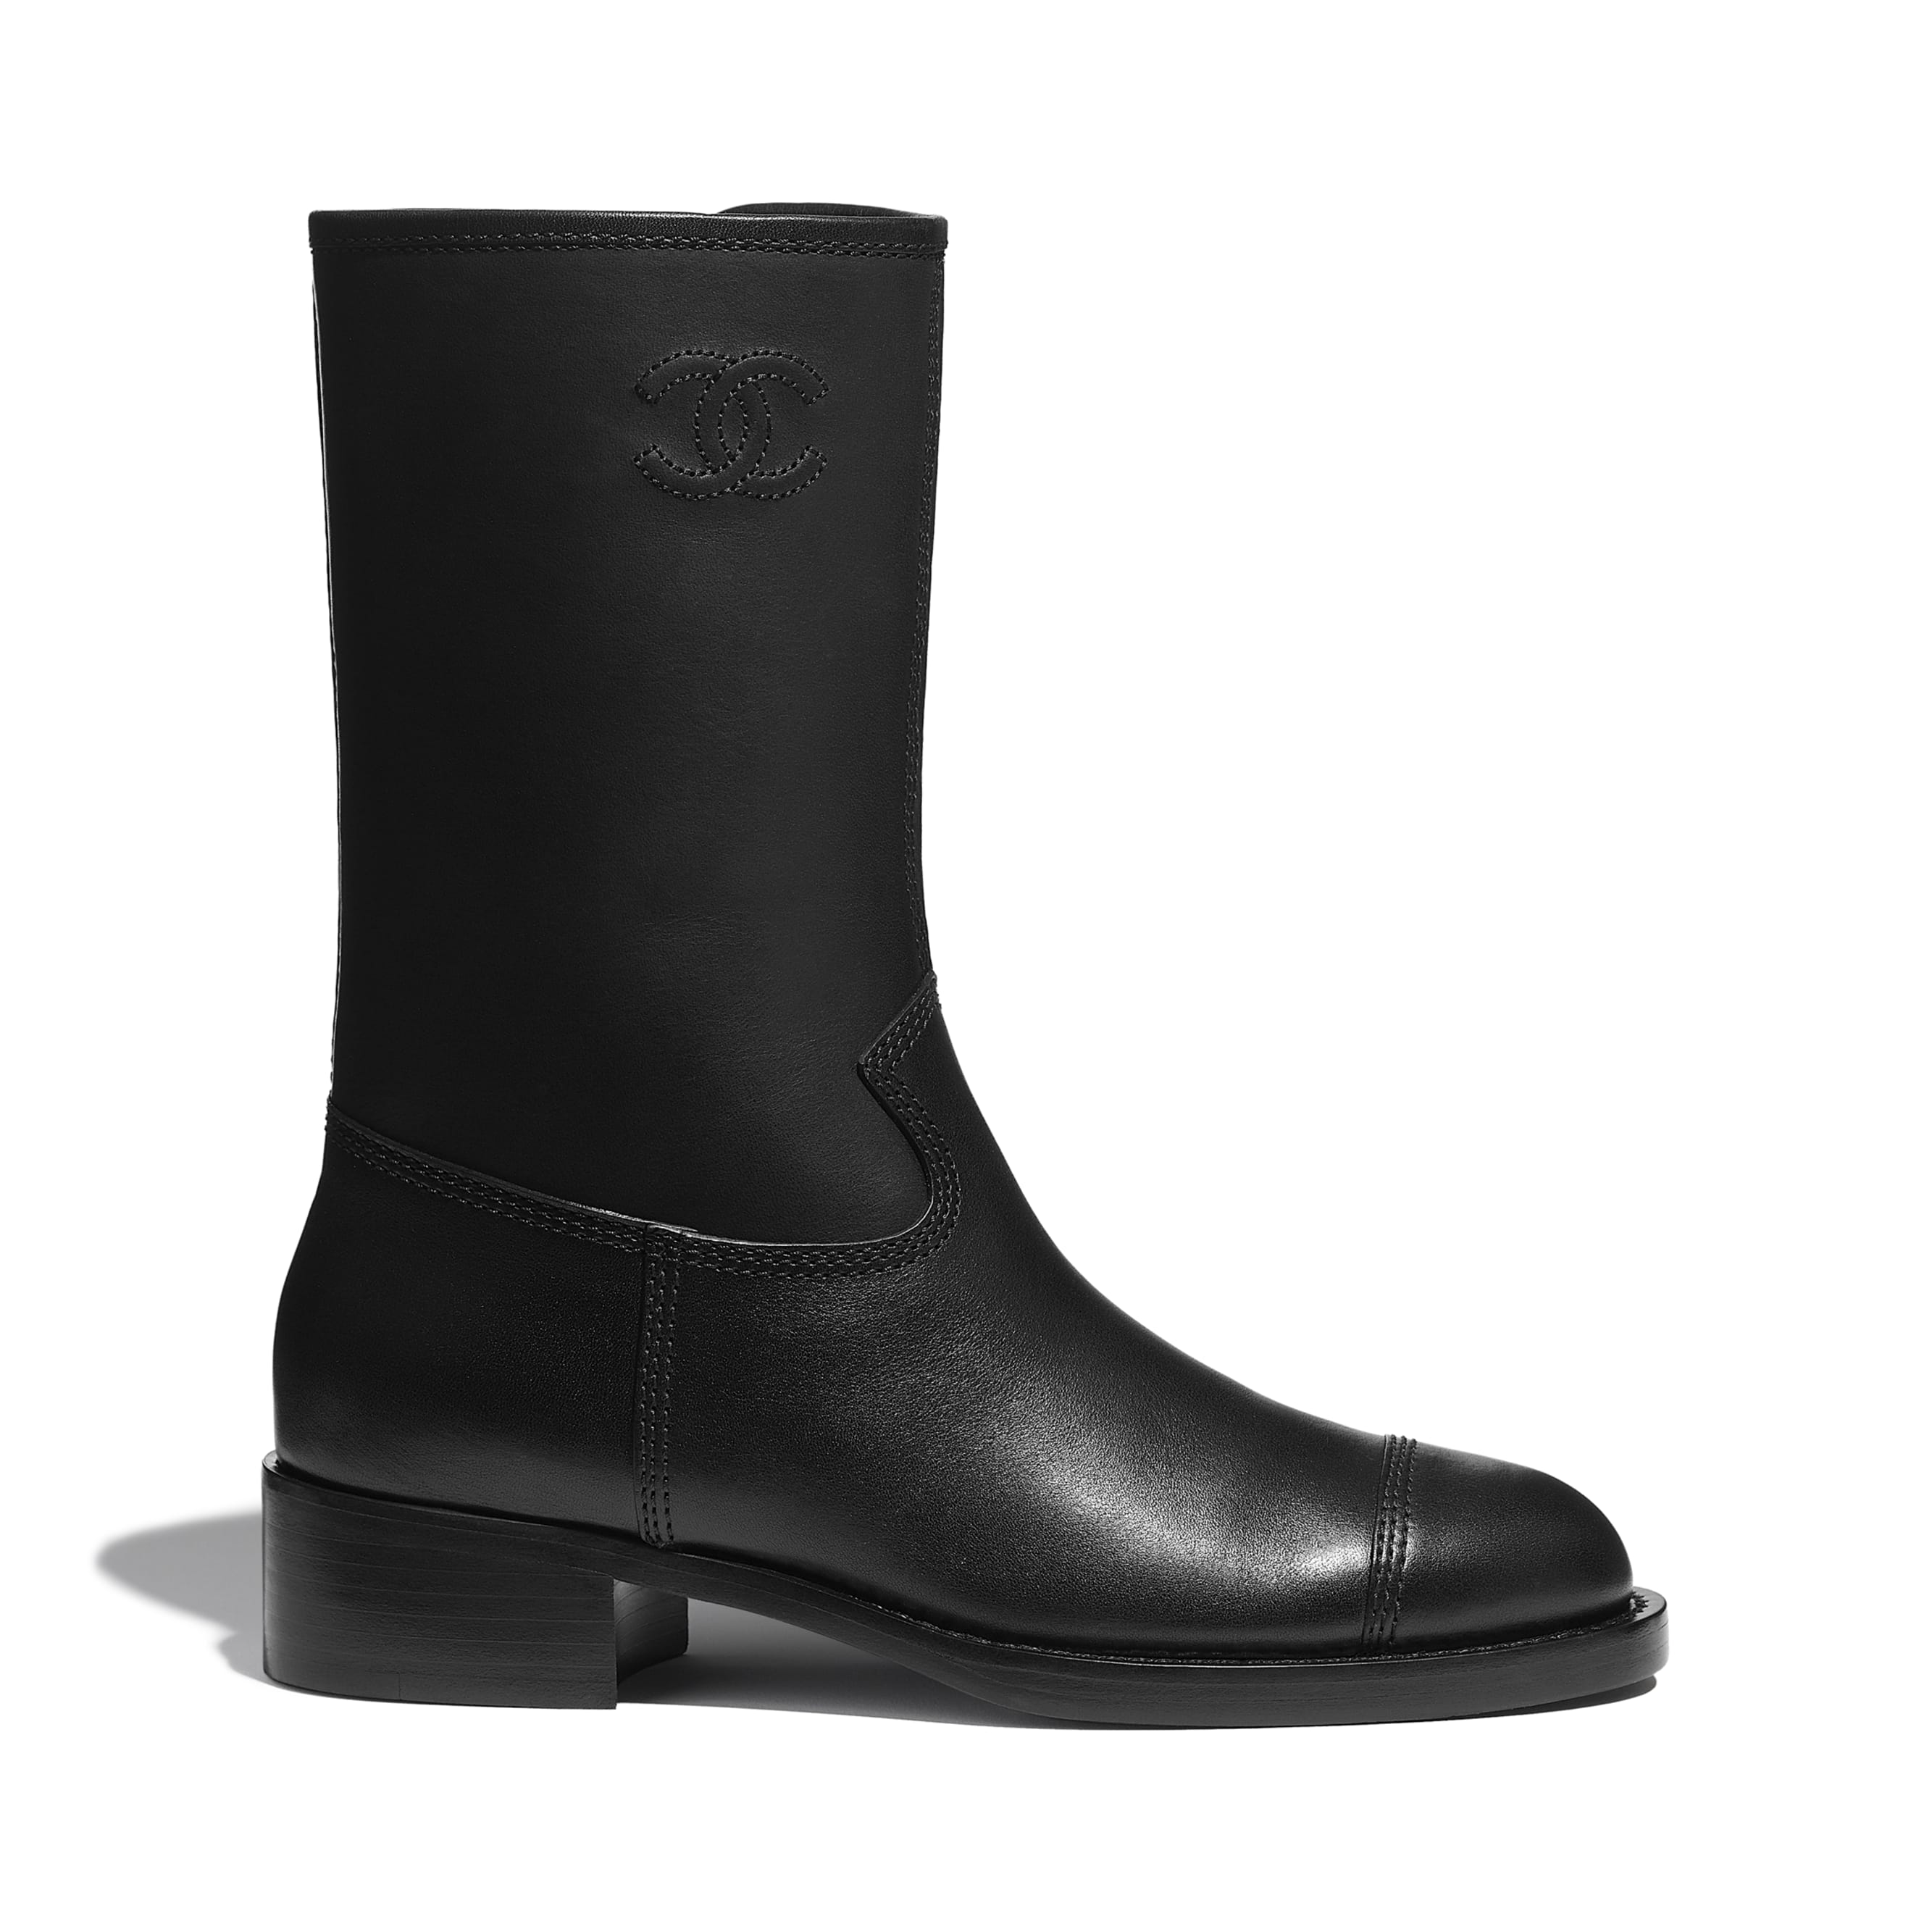 Mid-Calf Boots - Black - Calfskin - CHANEL - Default view - see standard sized version